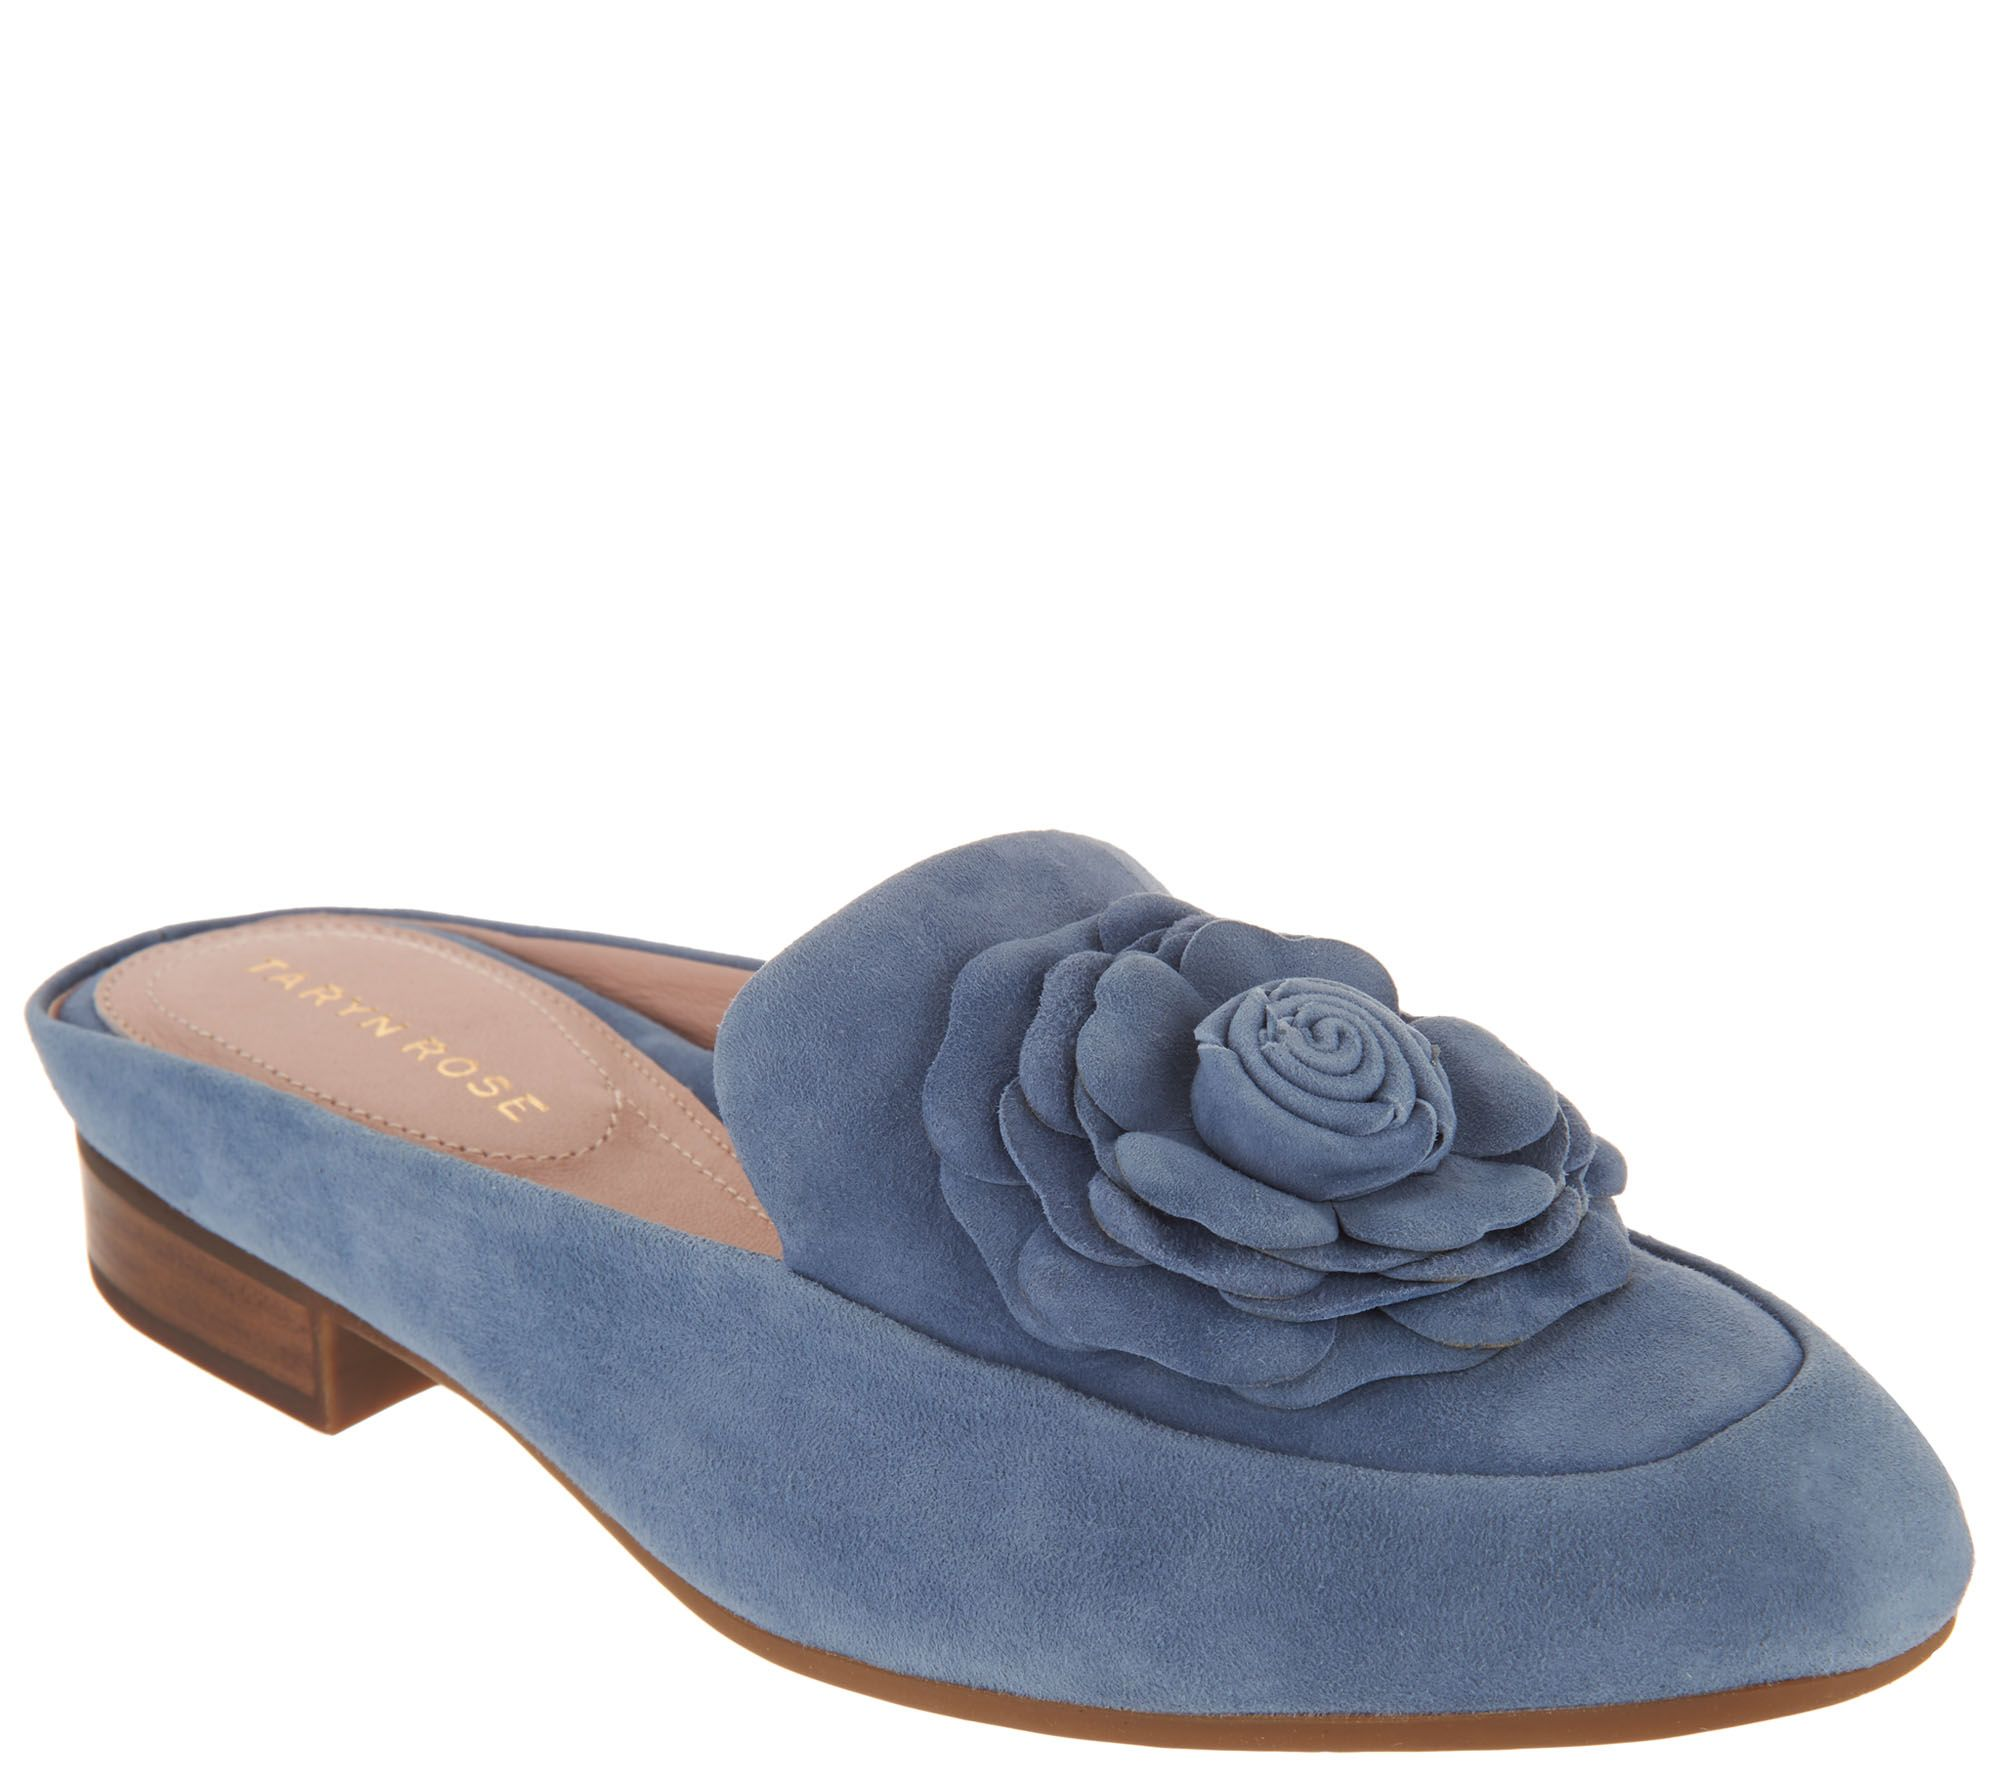 8f034180747ec Taryn Rose Leather or Suede Loafer Mules - Blythe — QVC.com